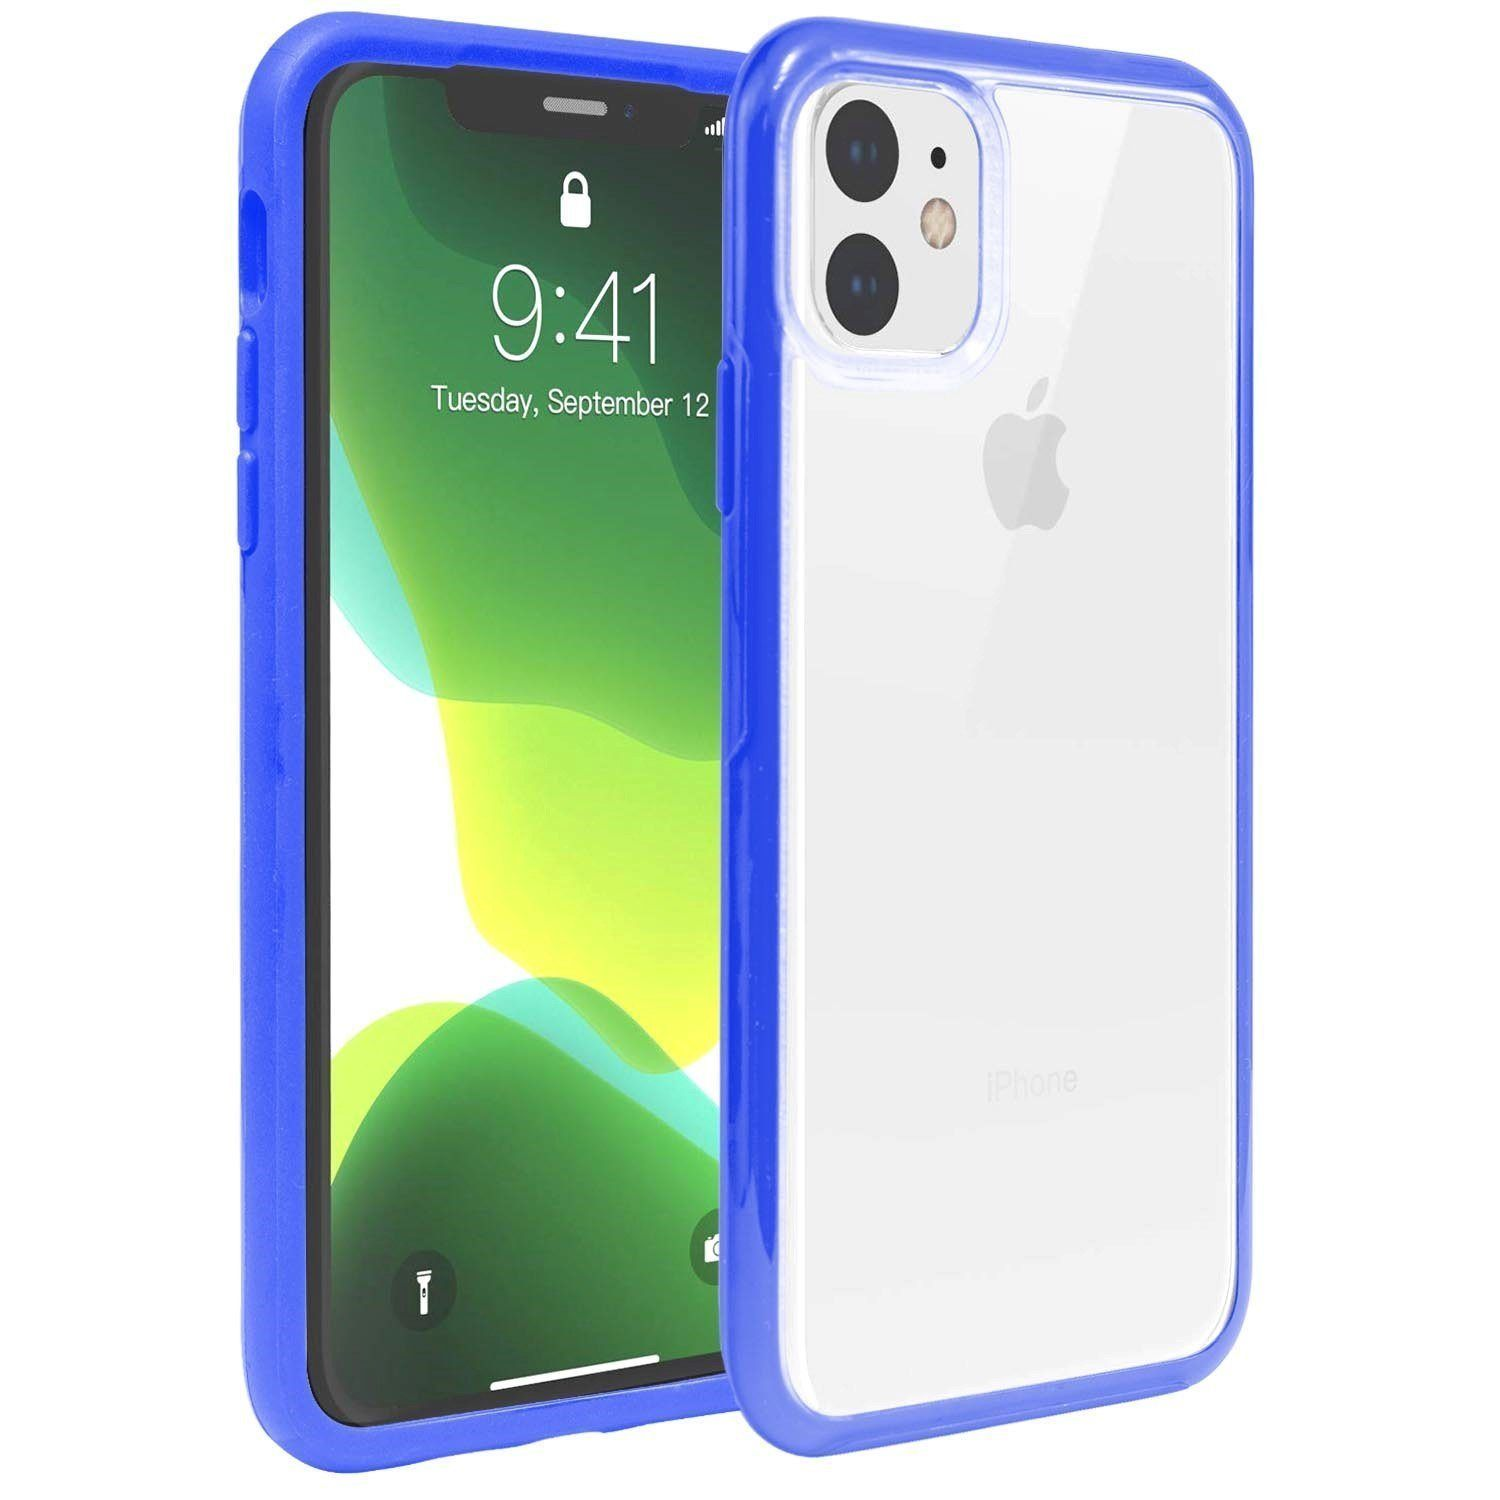 Hard Shell Transparent Back Case for iPhone 11 - Blue Edge